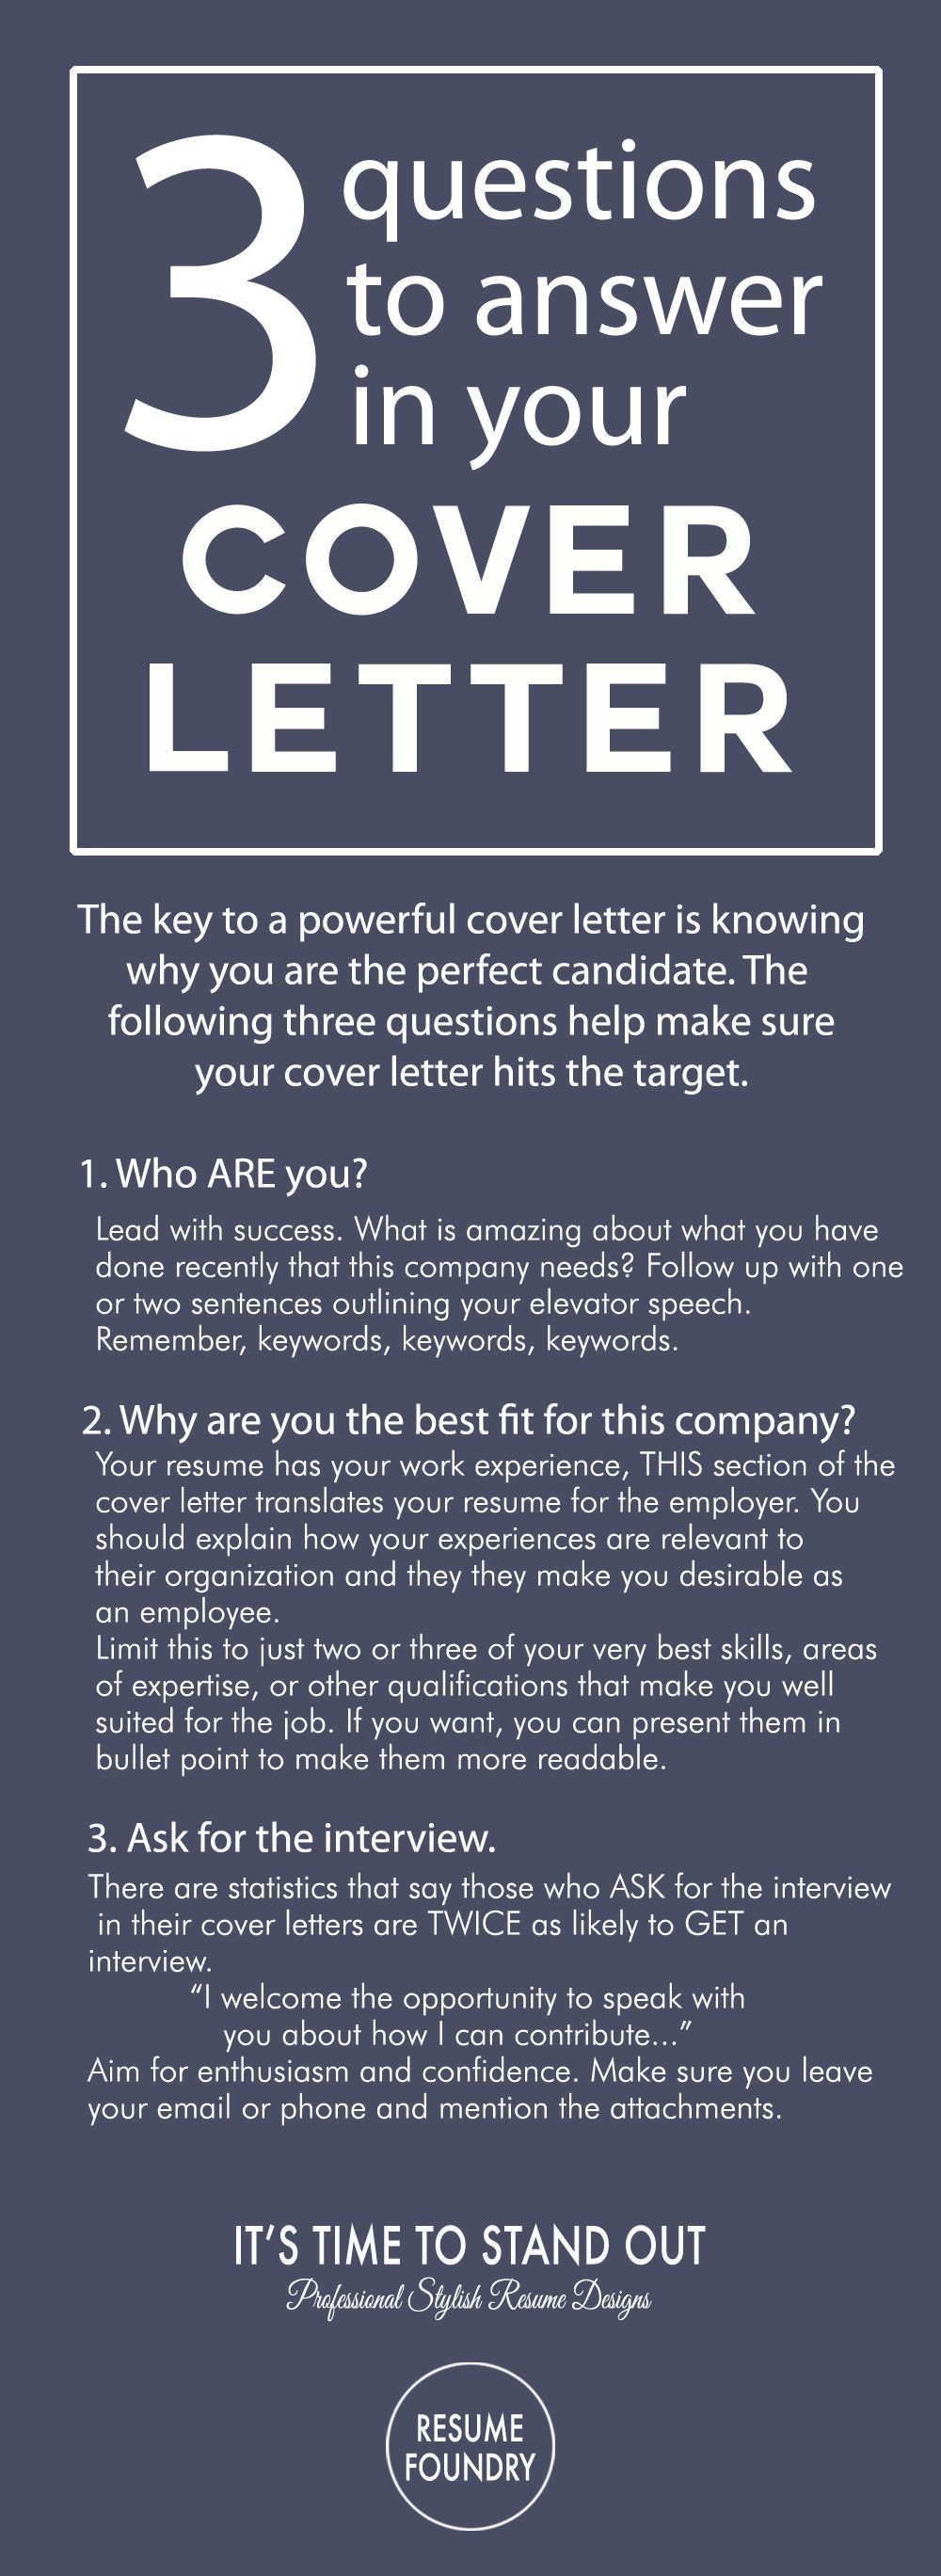 Cover Letter Tips - Outline. How to write a cover letter. | The ...